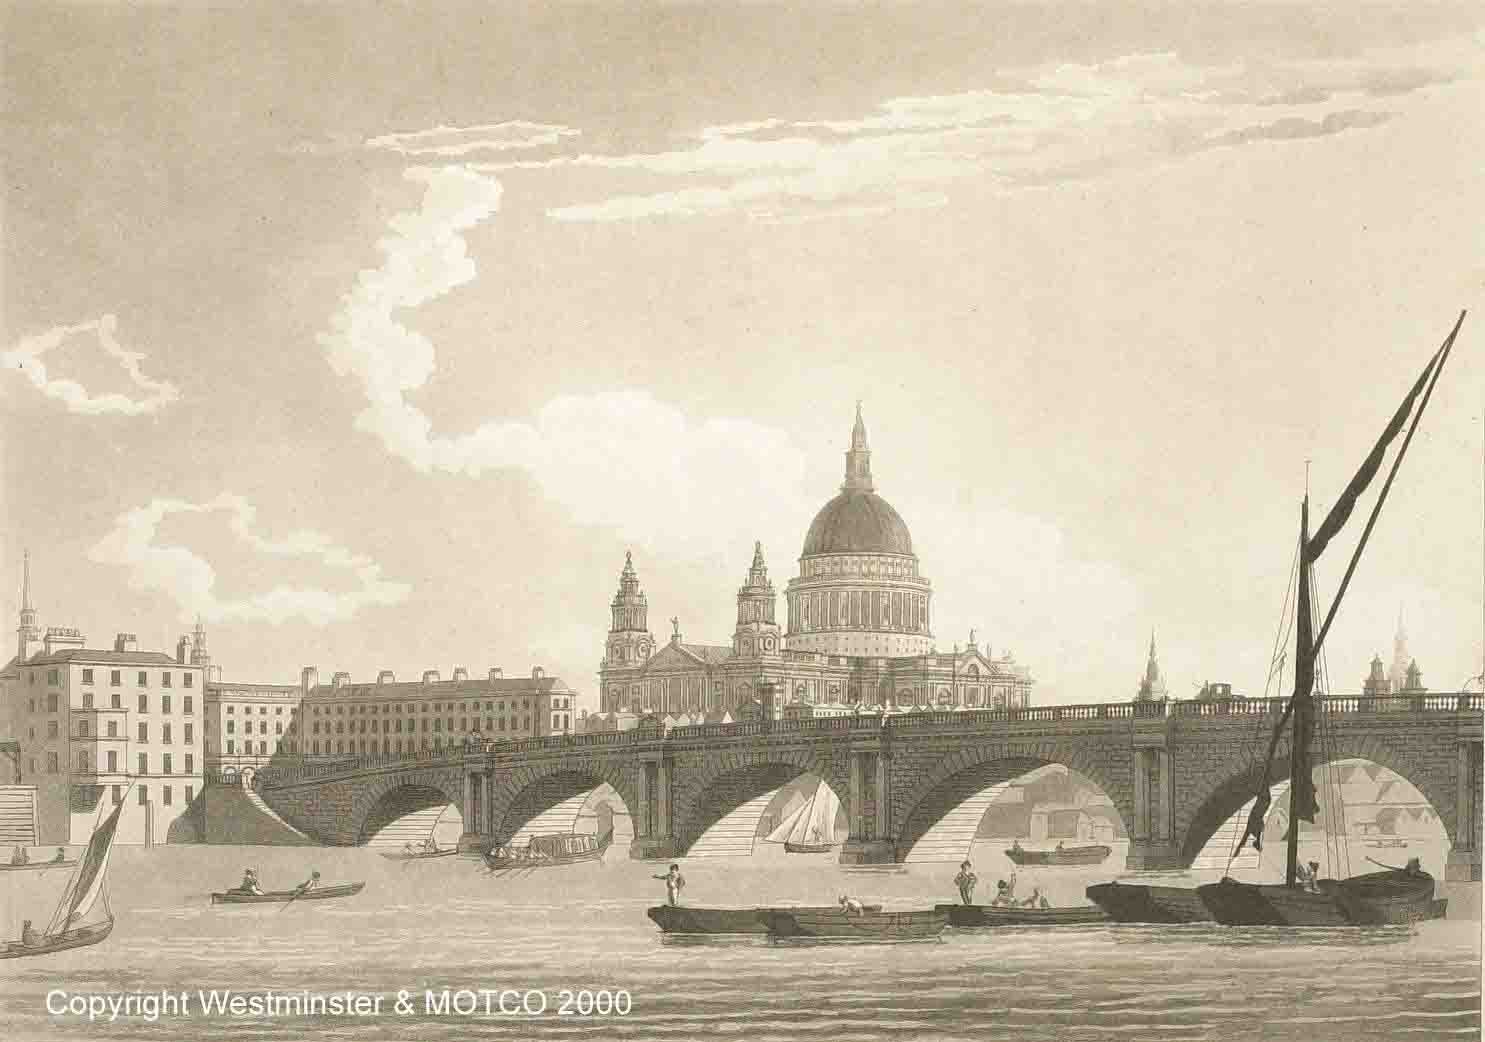 Blackfriars Bridge � MOTCO